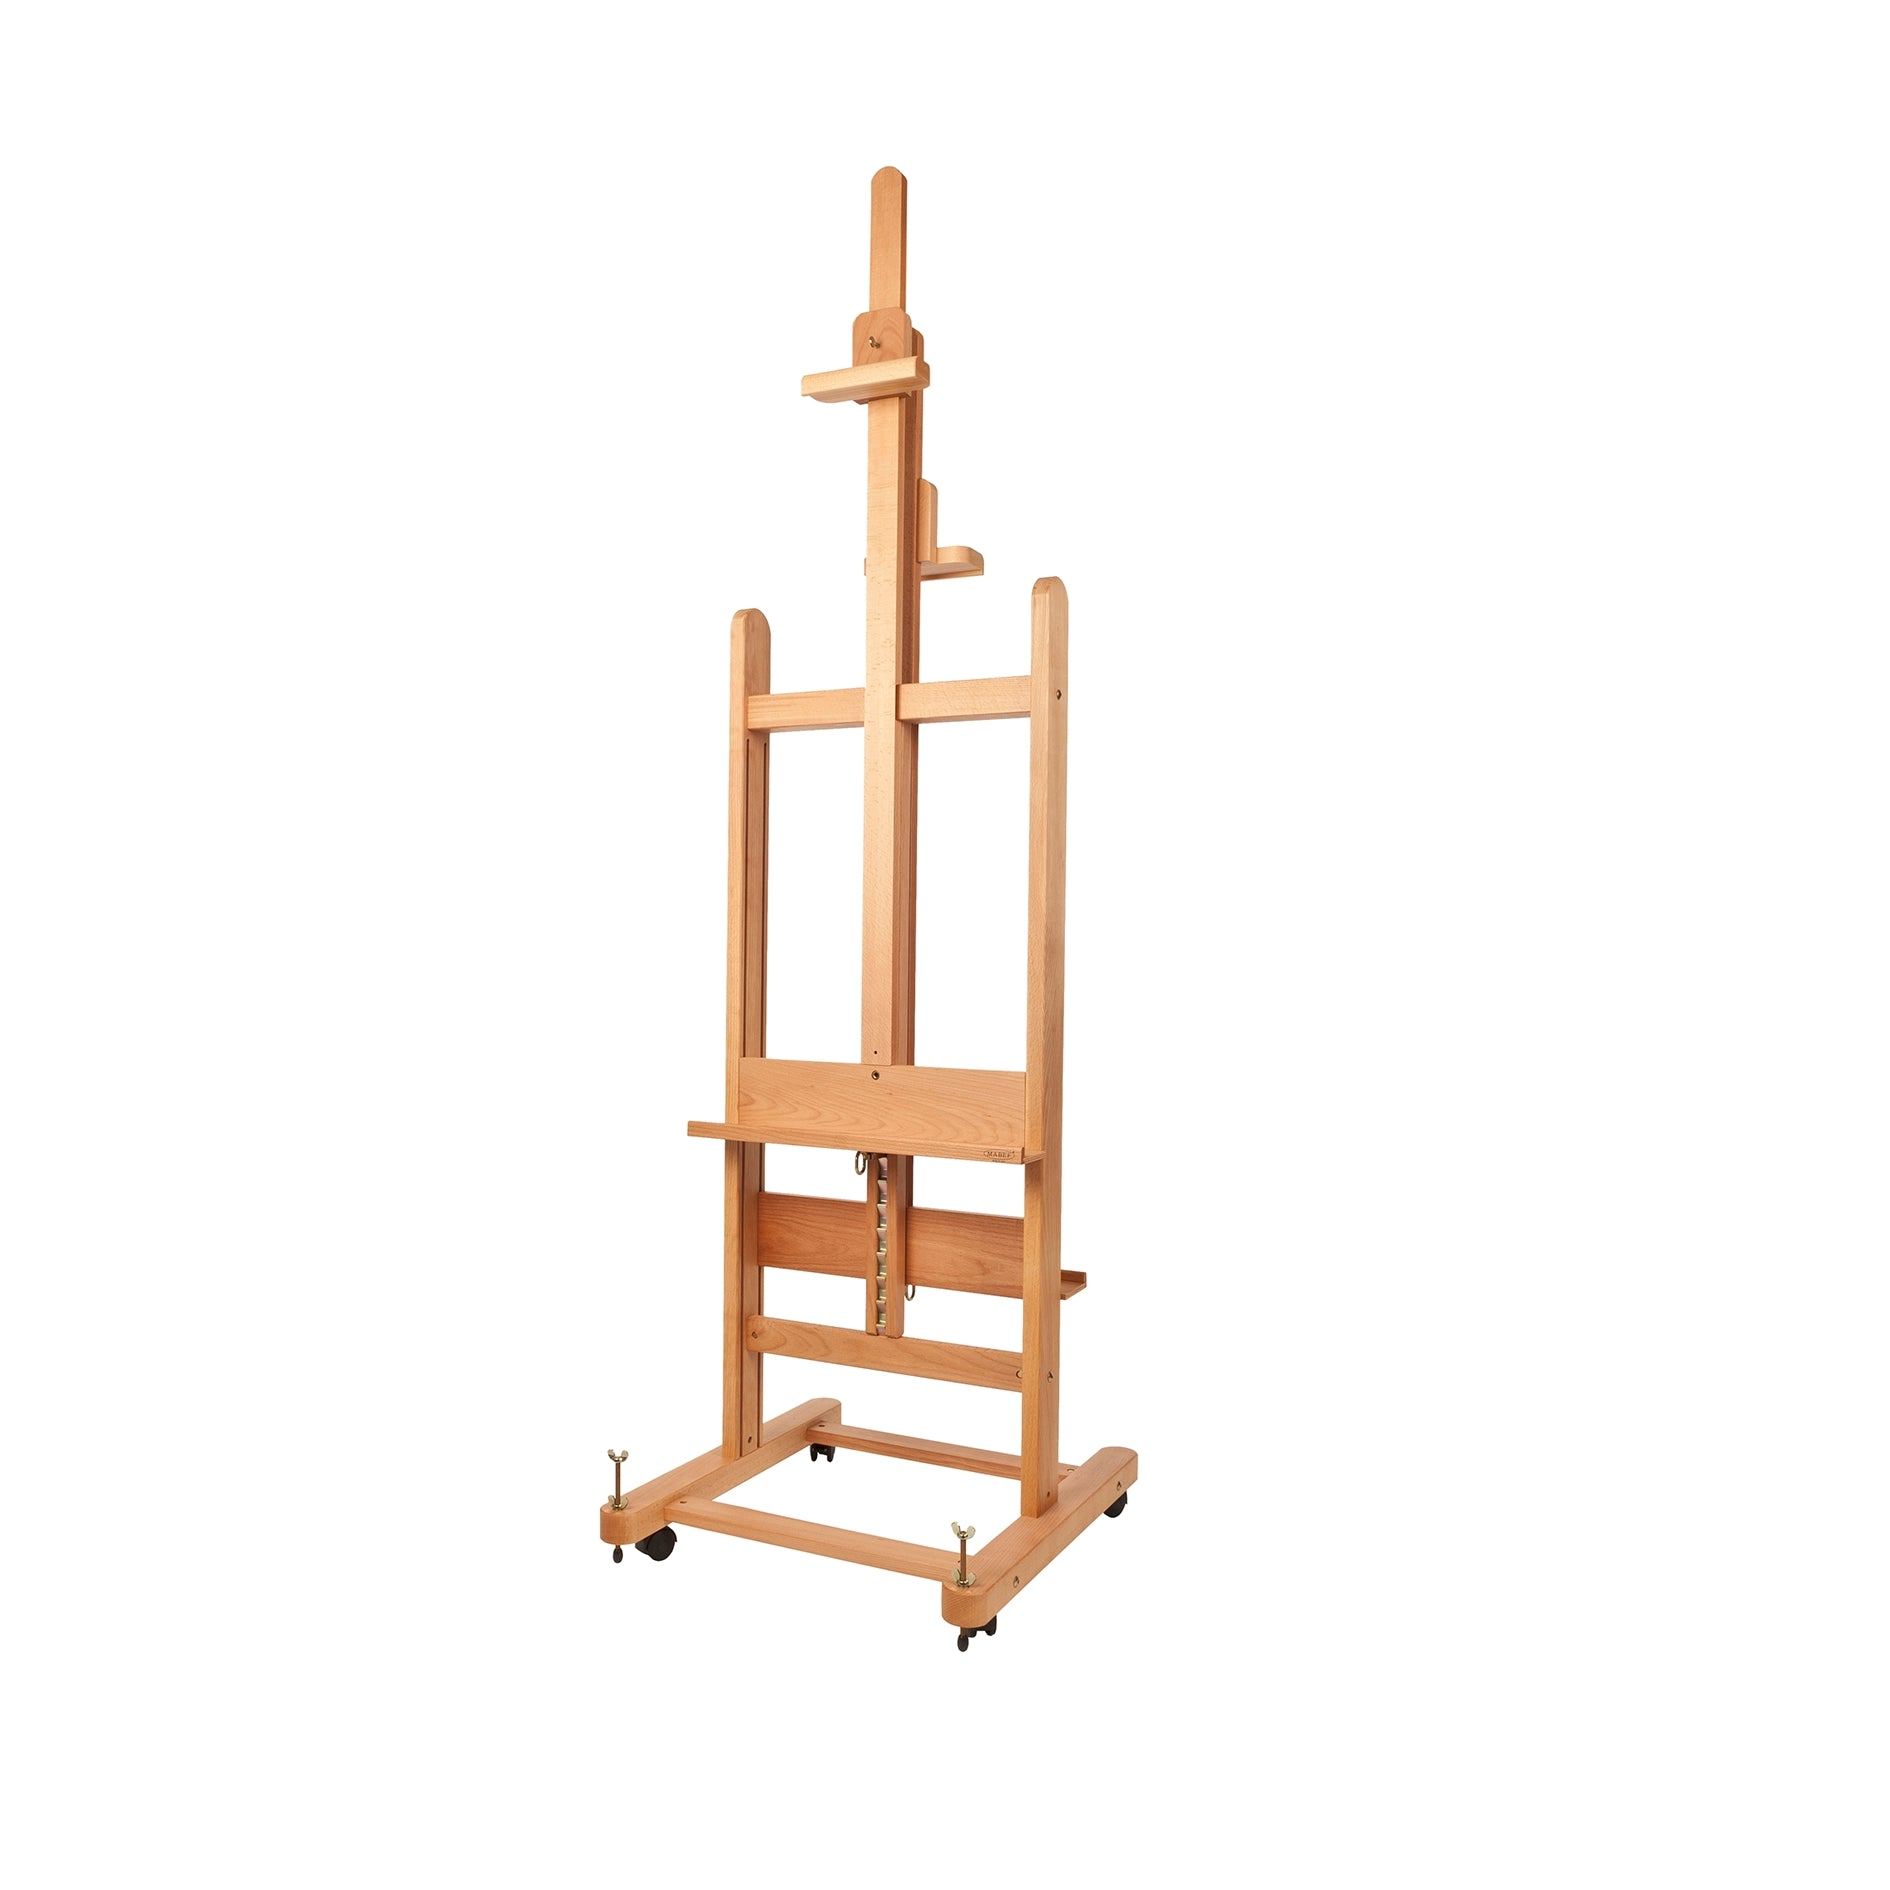 Mabef Beech Wood Double Sided Studio Easel - M/19